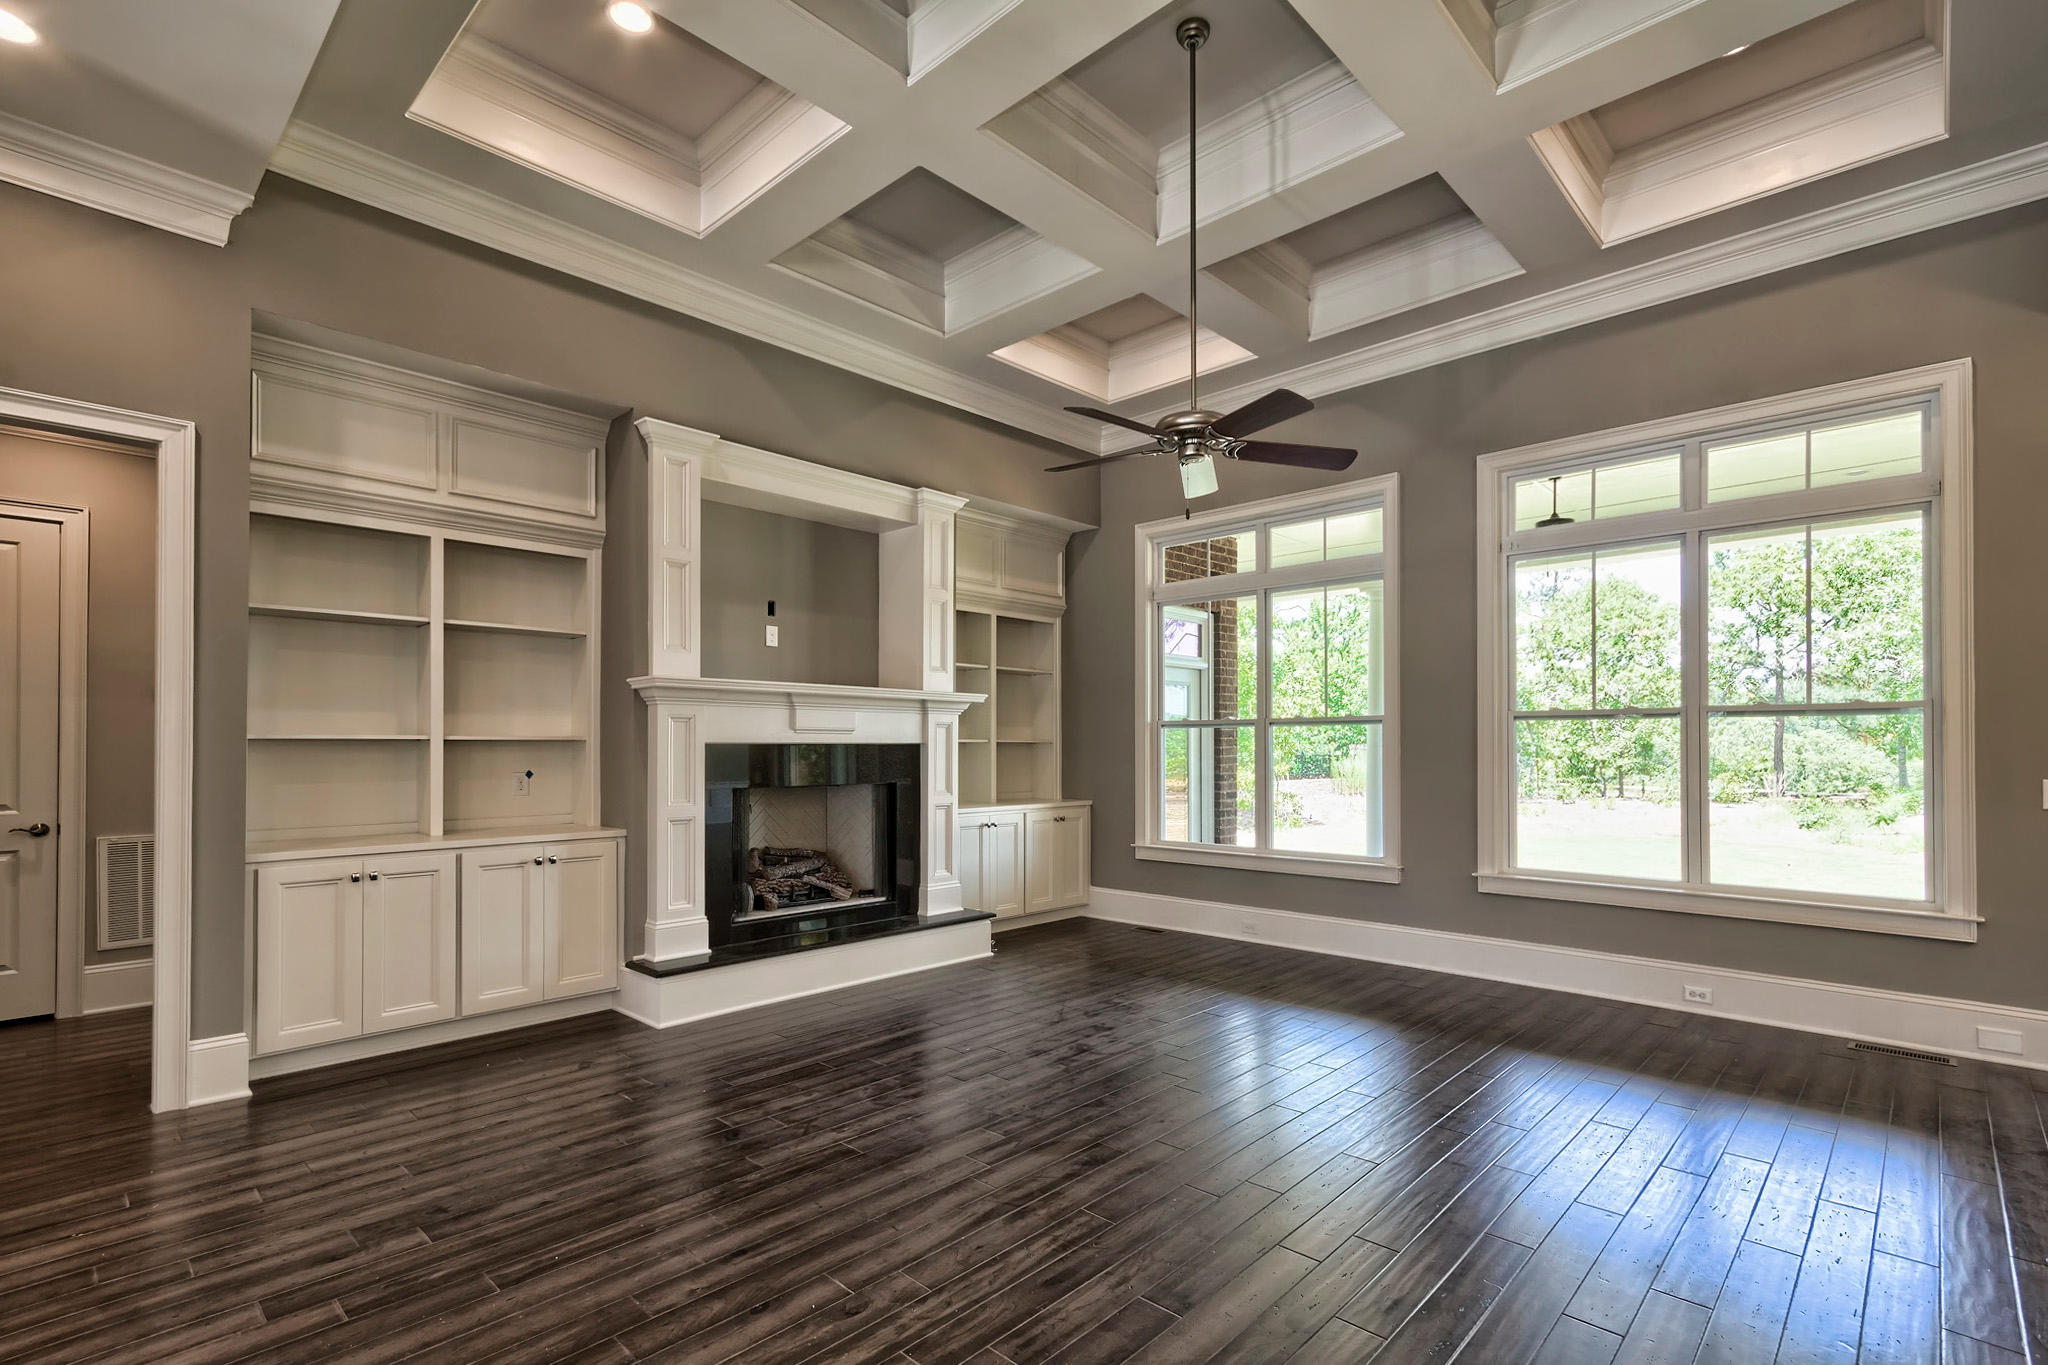 Woodcreek Farms Luxury Homes Executive Construction Homes image 18